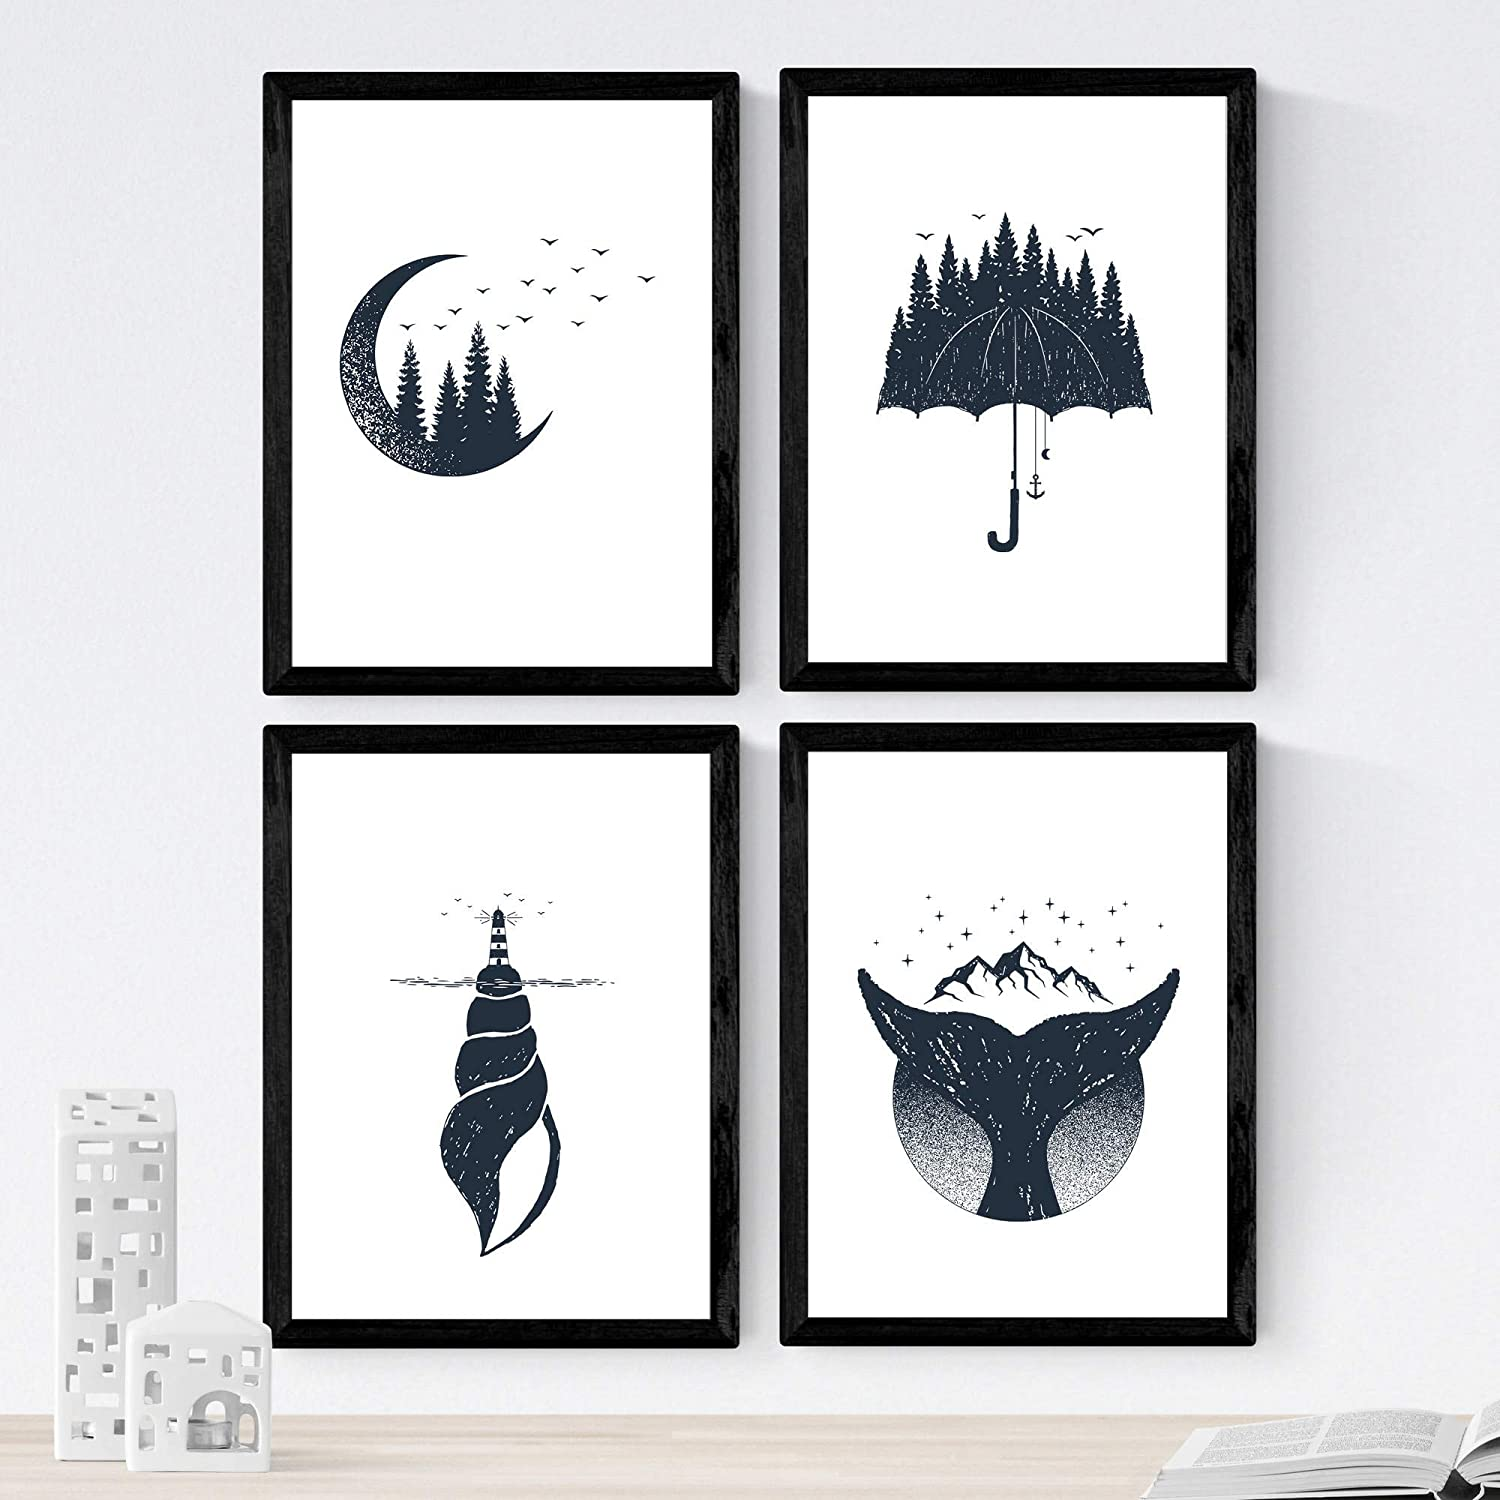 Nacnic Moon, Forest,Whale, Umbrella, sea Shell,Mountain, Birds Anchor, Lighthouse, Black&White in 8x11 Size, Poster Paper 250 gr. Frameless